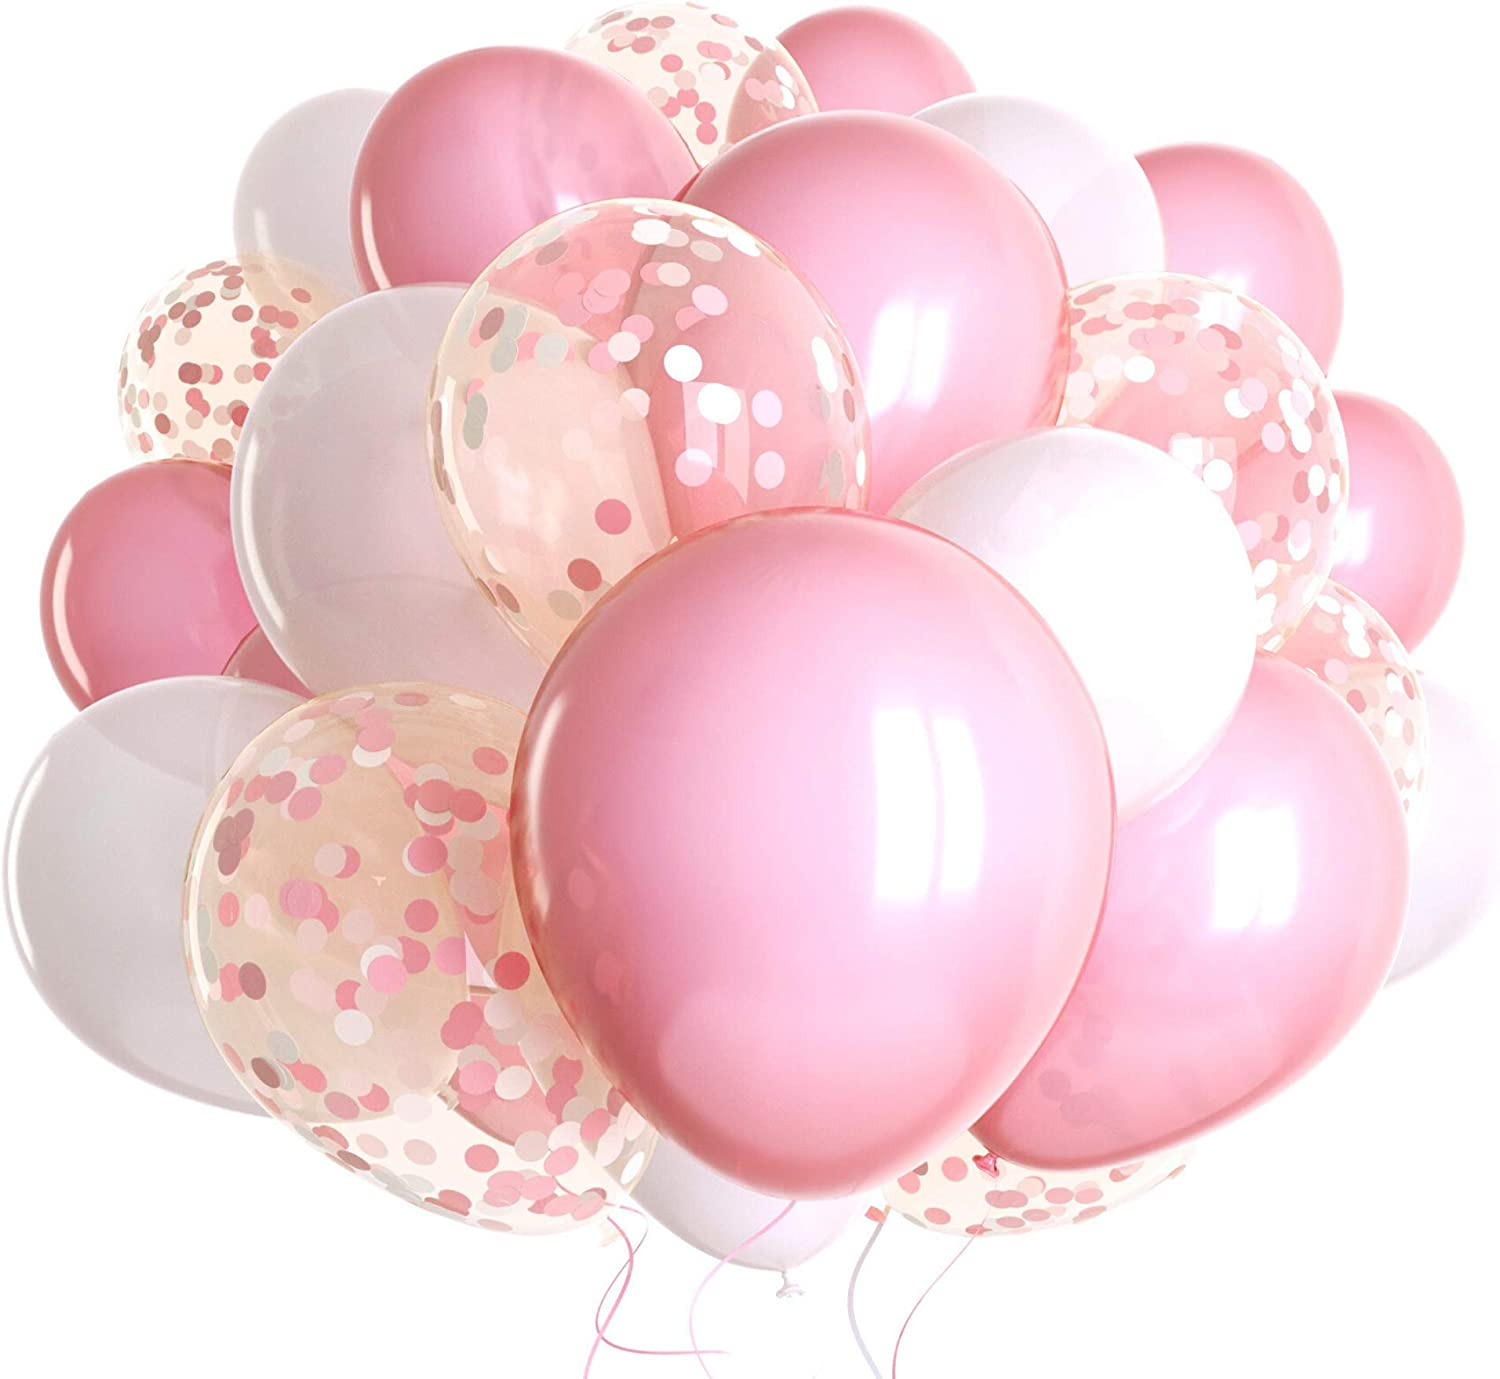 60 Pack Pink Balloons + Pink Confetti Balloons + White Balloons w/Ribbon | Light Pink Balloons | Pink Balloon | Pink Latex Balloons | Baby Pink Balloons | Wedding Shower Decorations | Bulk Balloons |